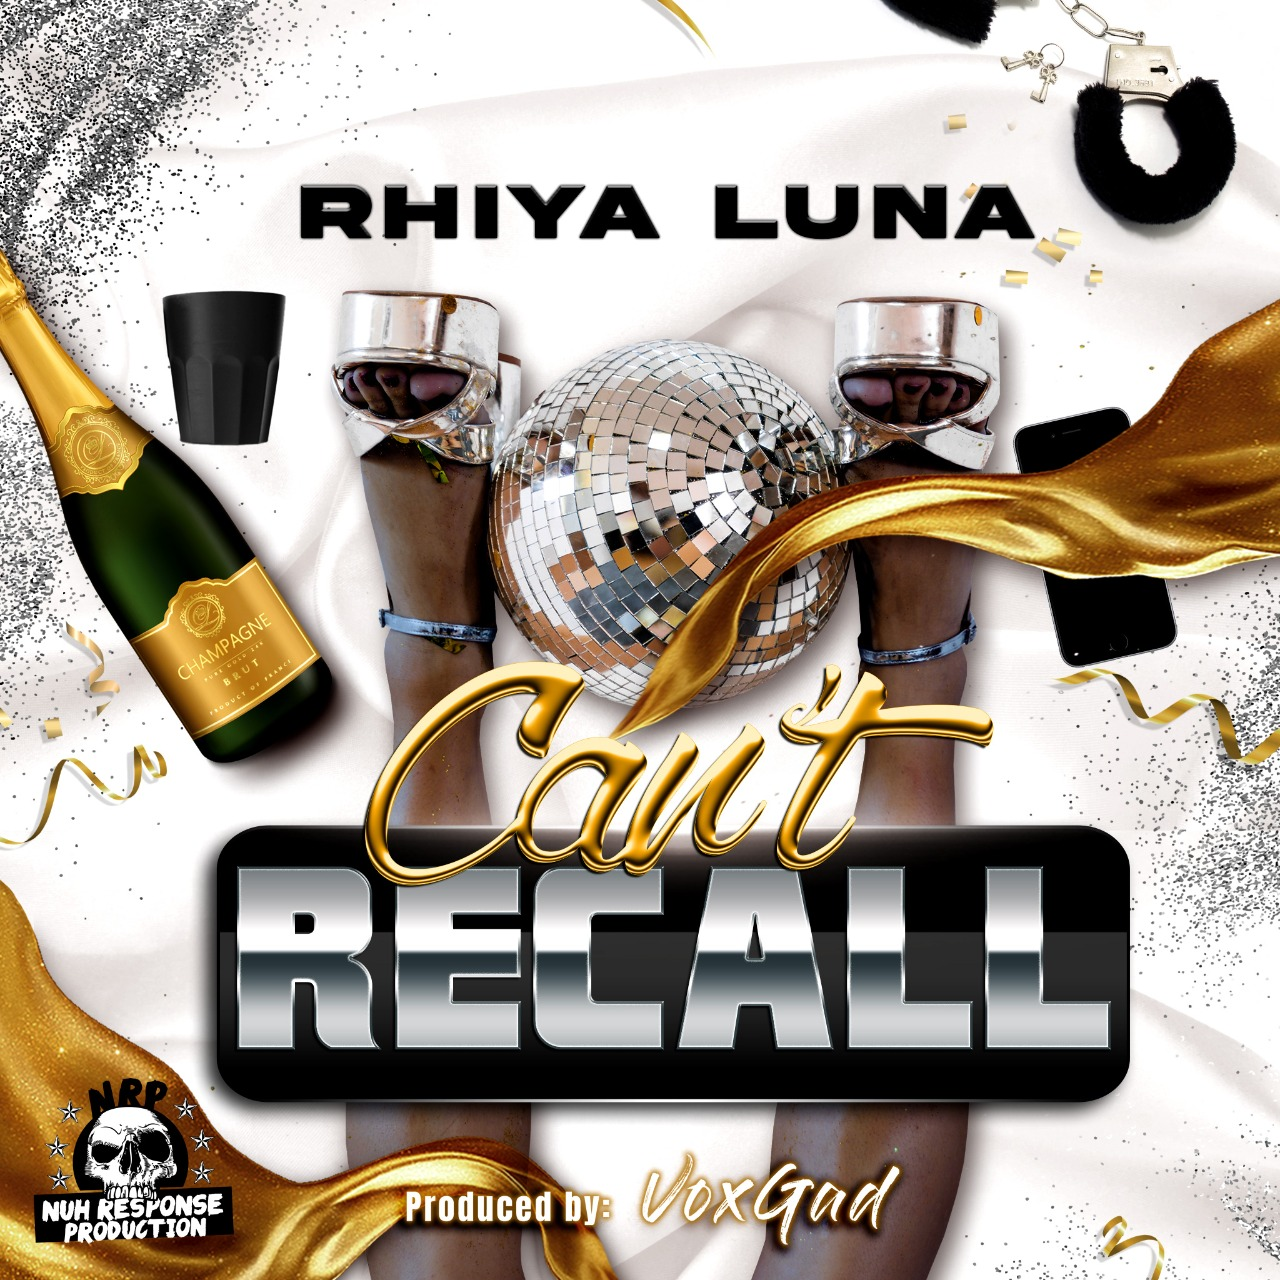 Jamaica Boston Dancehall Music 13thStreetPromo 13thStreetPromotions Rhiya Luna Can't Recall Drunk Party Caribbean Singer Vox Gad Nuh Response Production